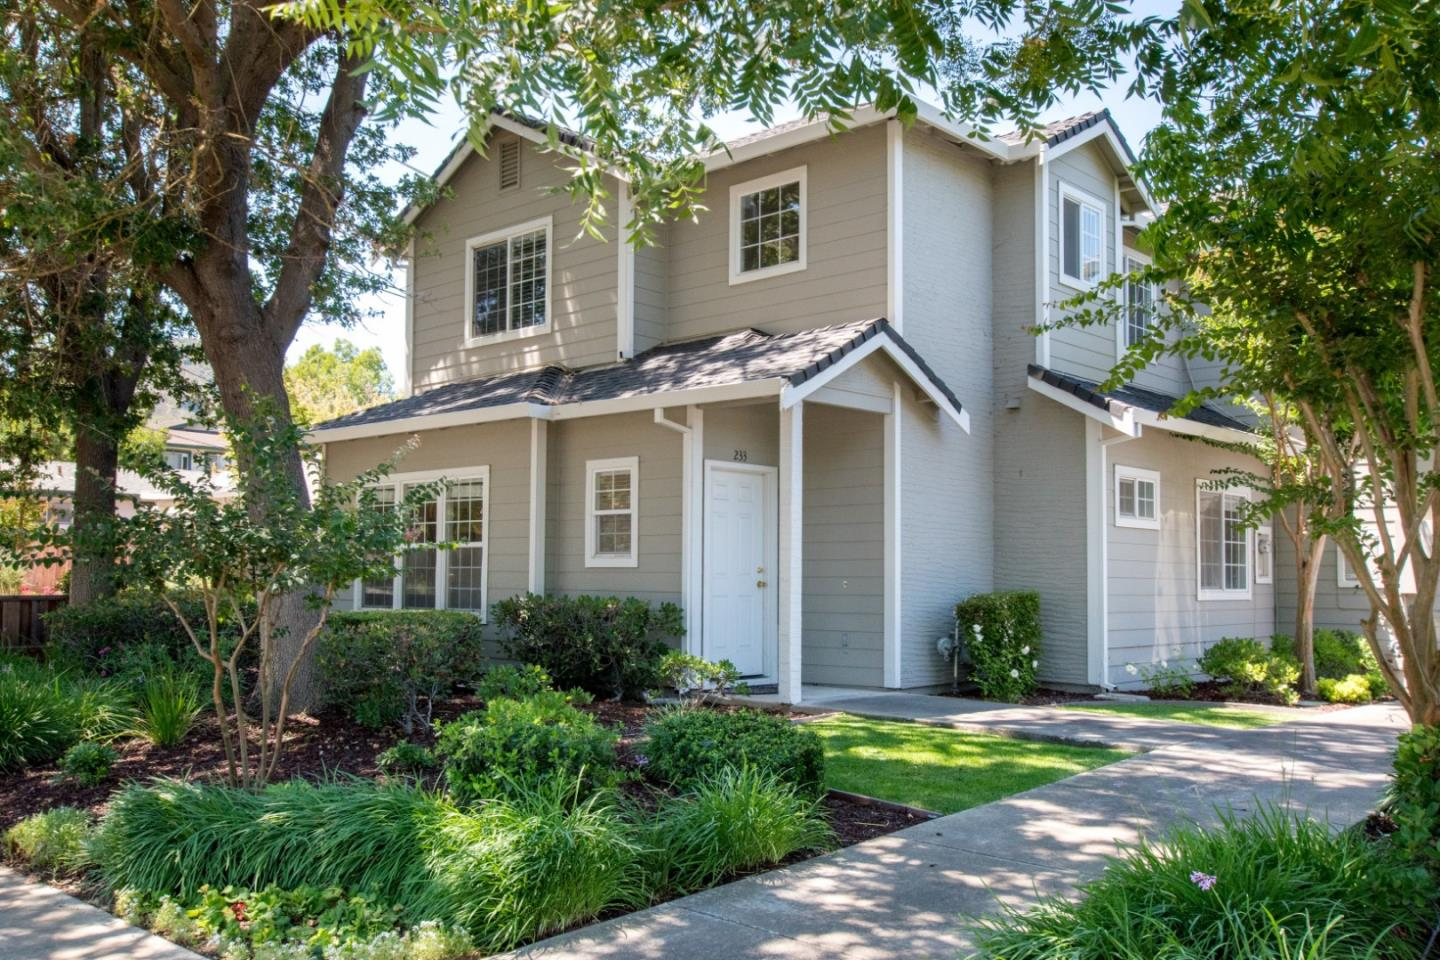 233 Spring AVE, Morgan Hill in Santa Clara County, CA 95037 Home for Sale